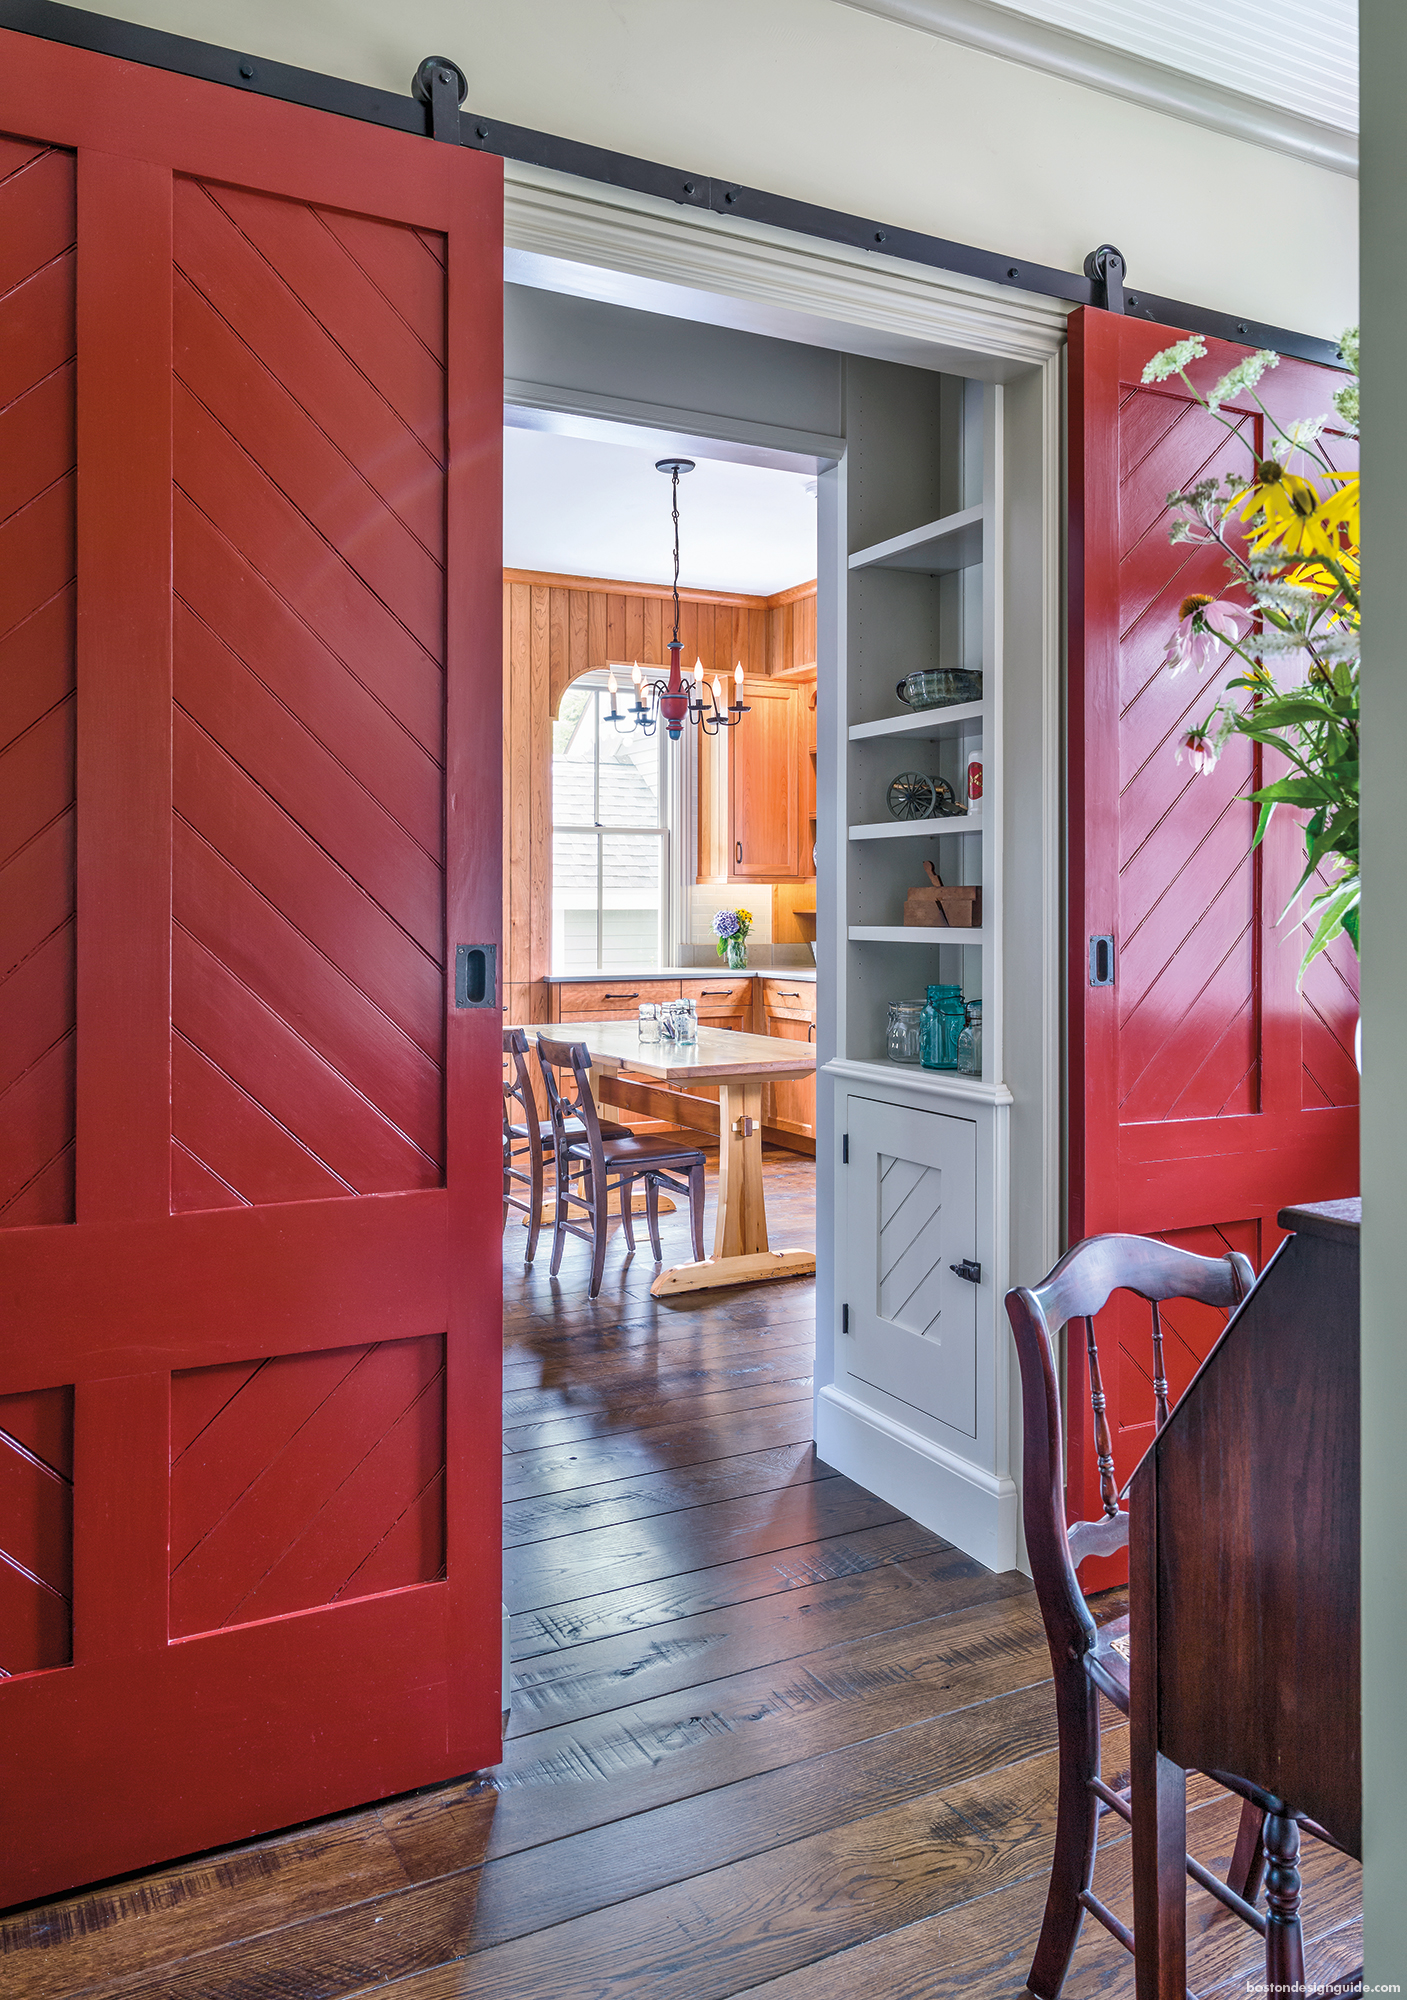 1920s sensibility in a Winchester kitchen